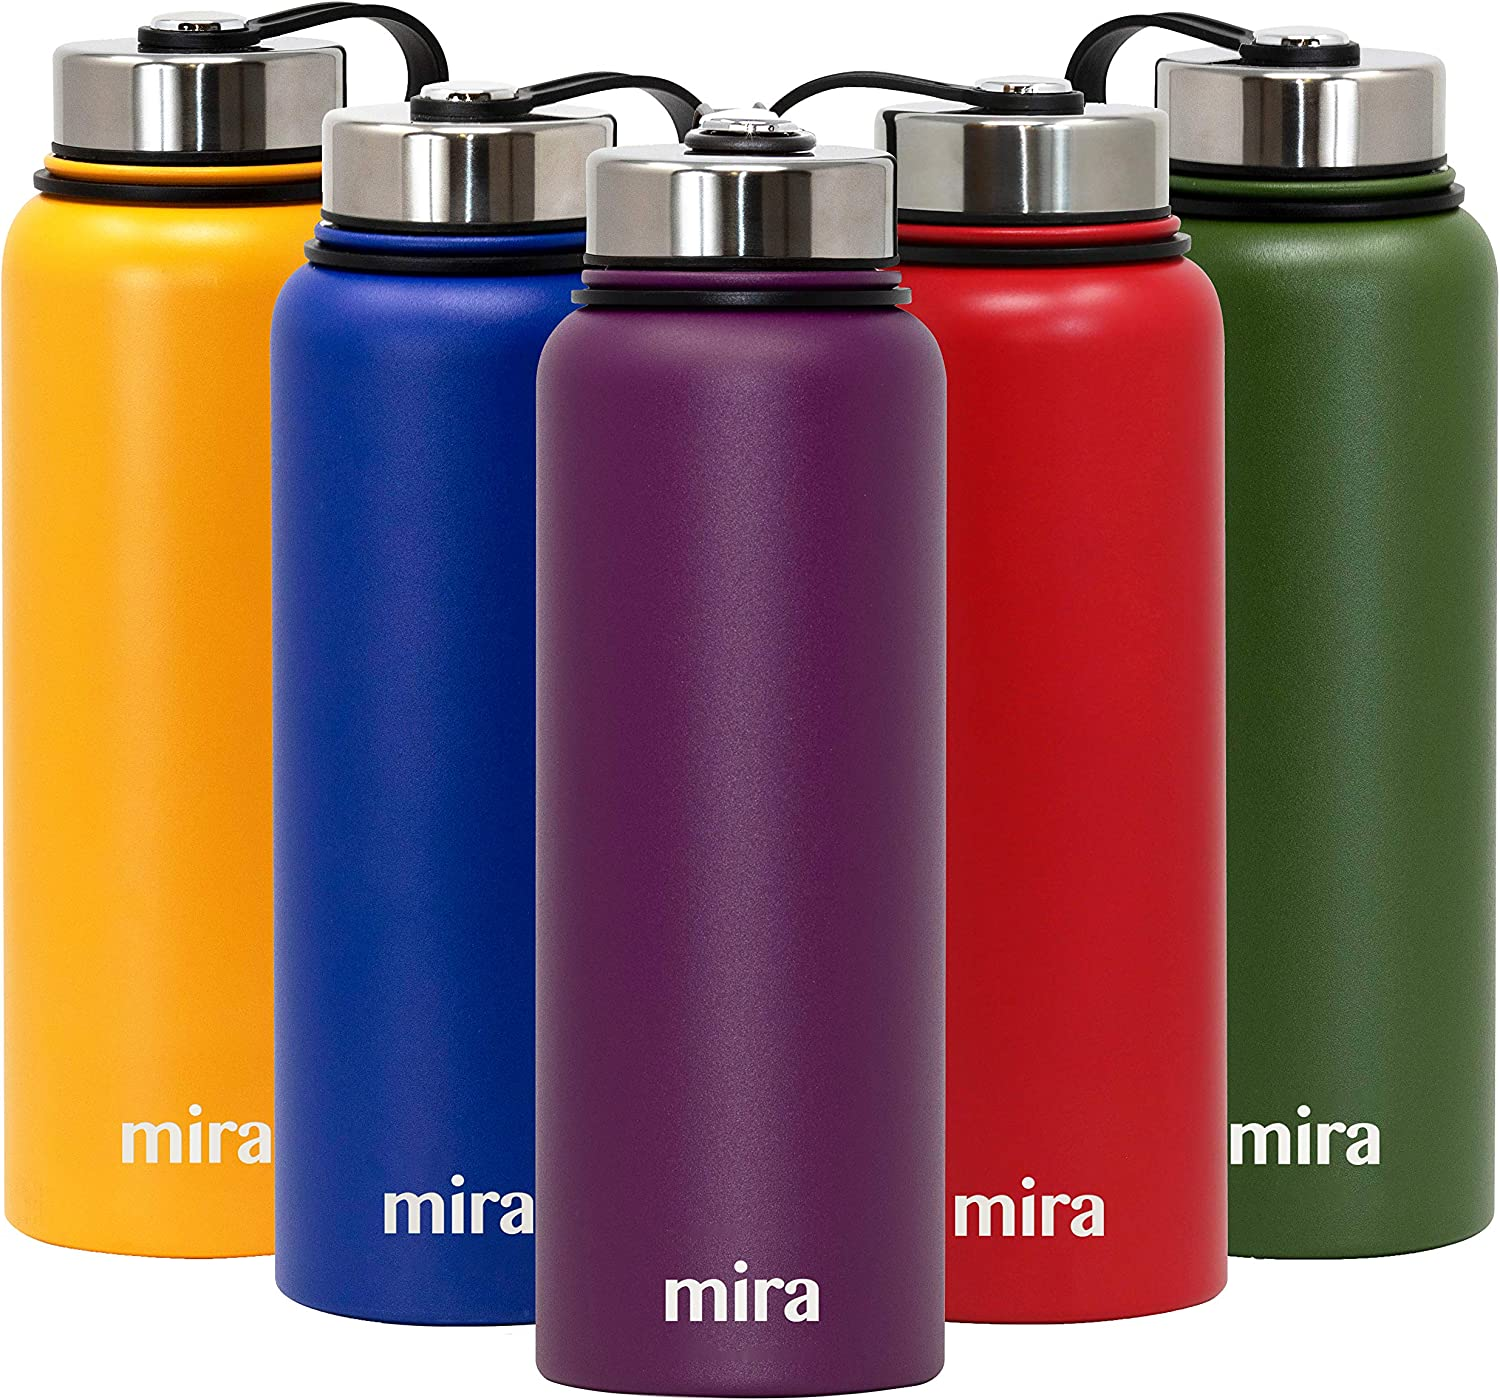 MIRA Insulated Stainless Steel Large Water Bottle | Vacuum Insulated Wide Mouth Thermos Flask | Keeps Water Stay Cold for 24 Hours, Hot for 12 Hours | Metal Bottle BPA-Free Cap | Iris | 40 oz